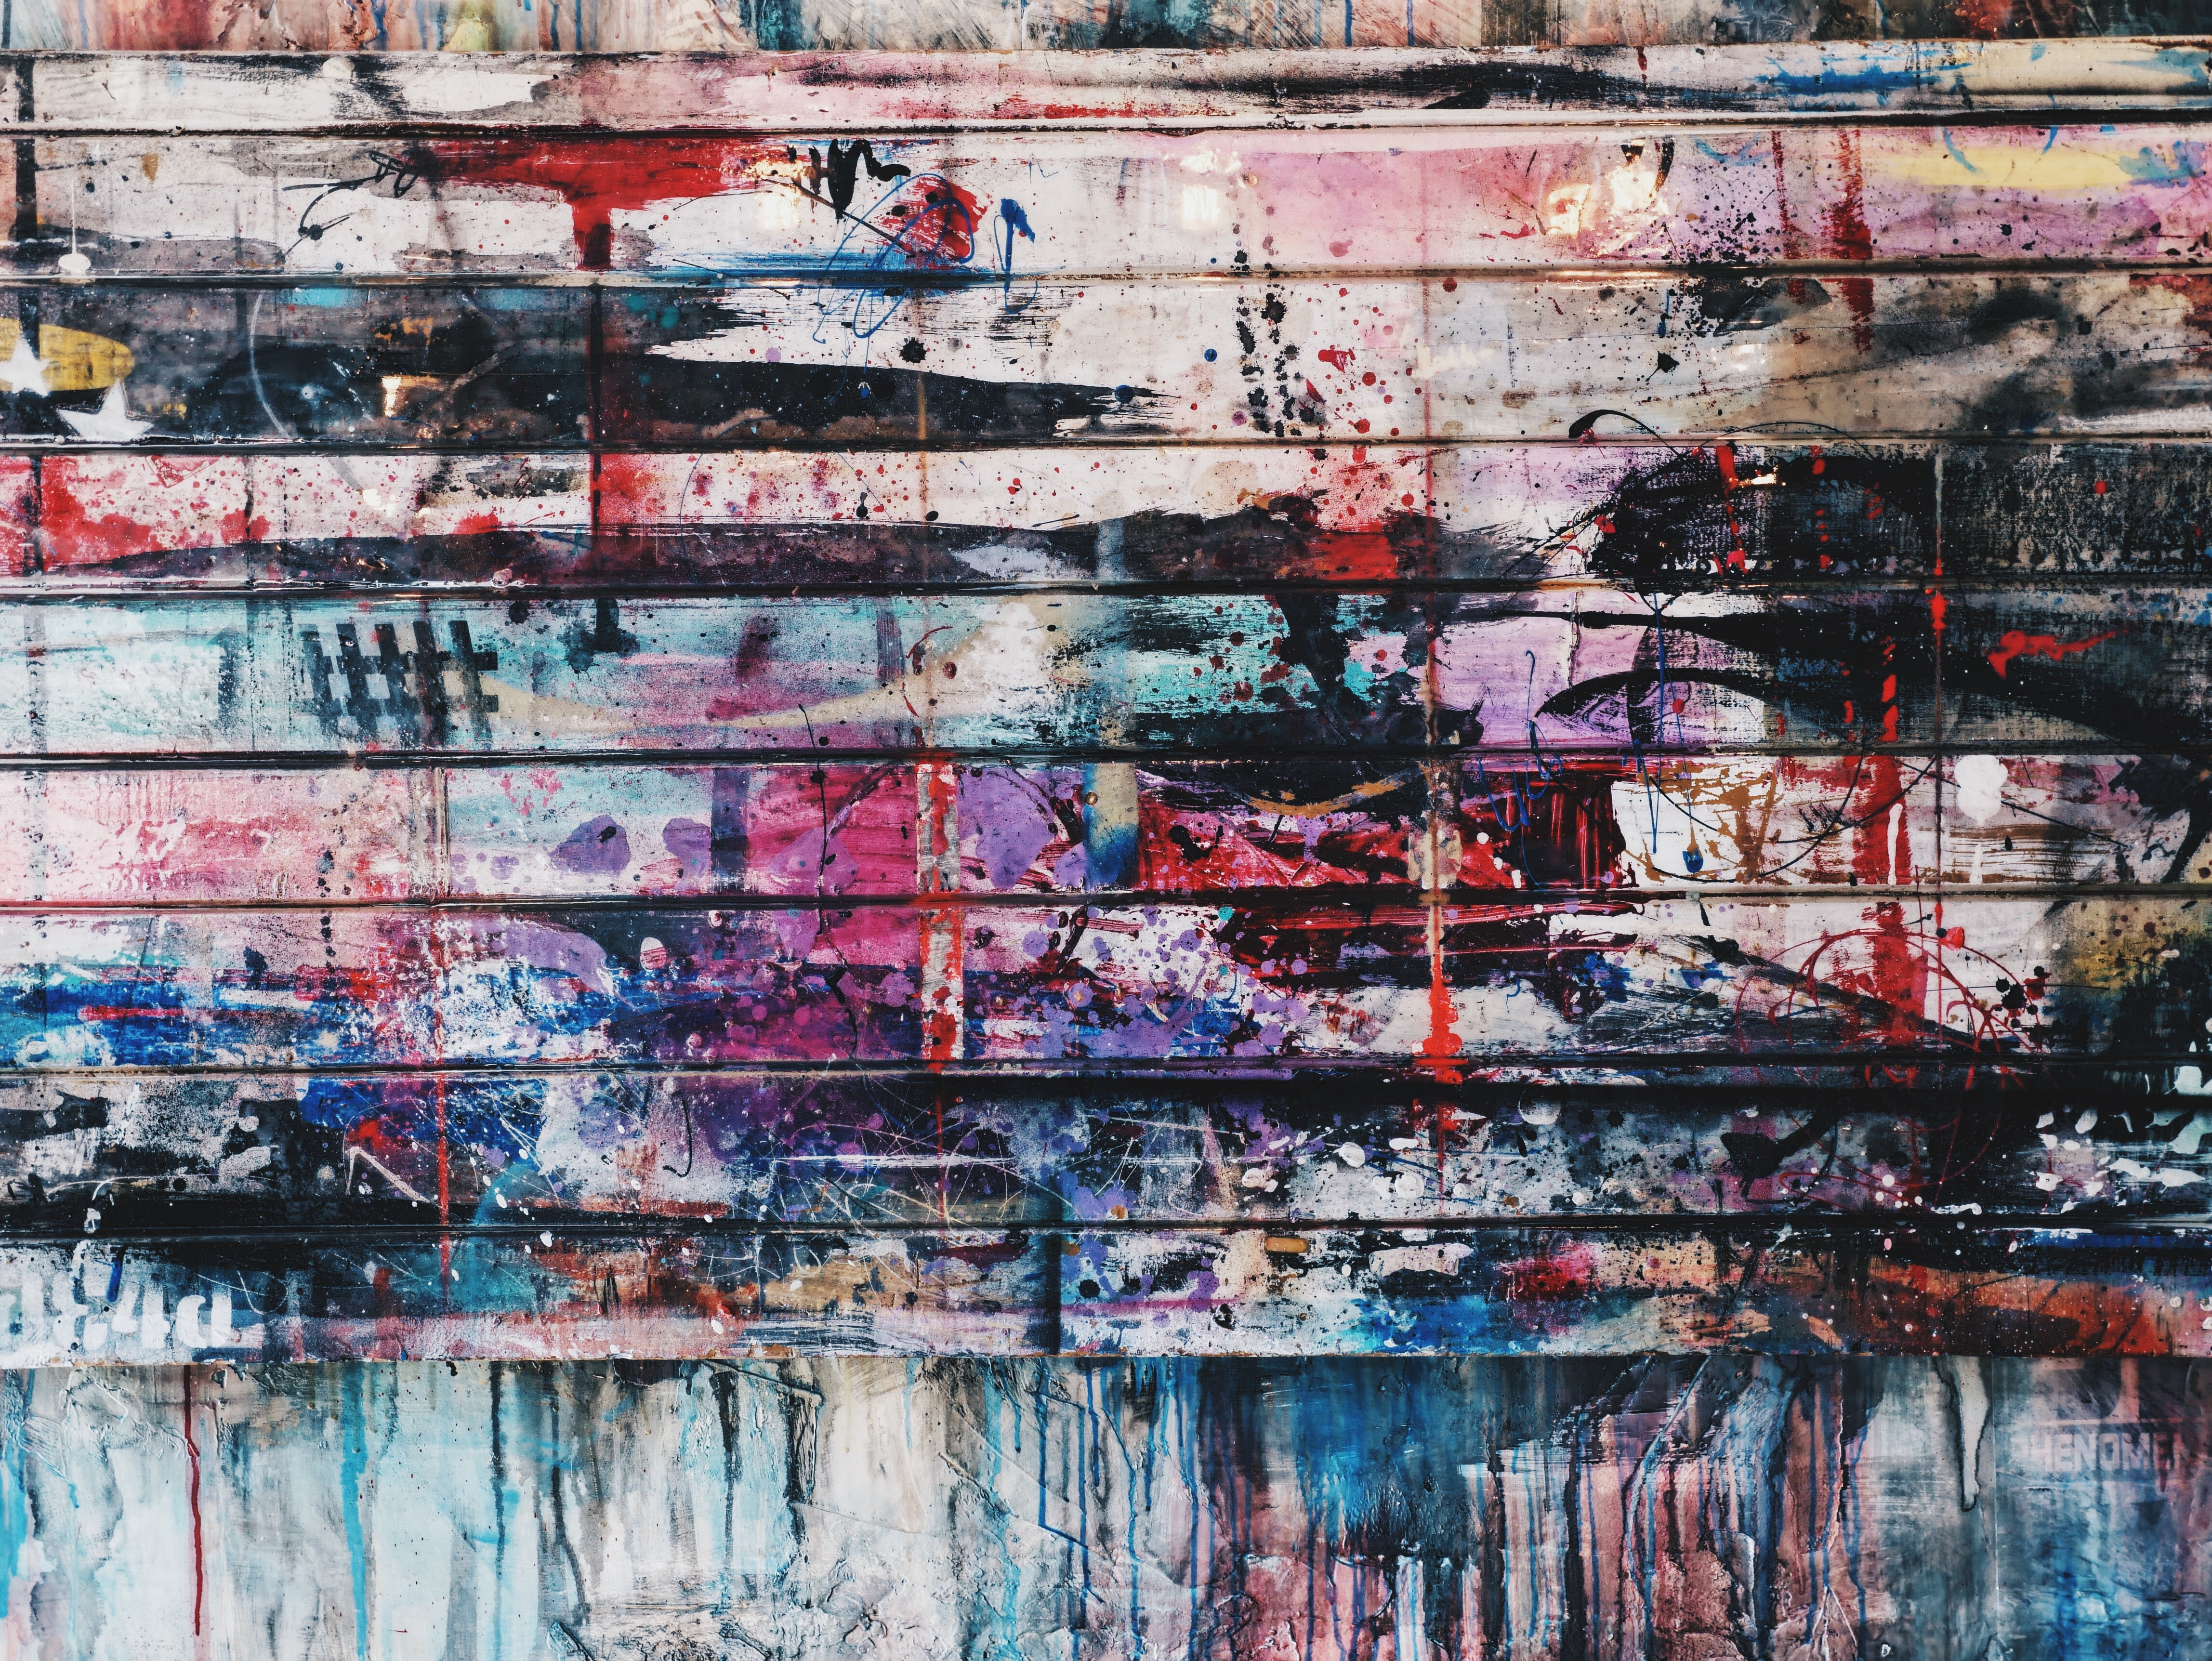 Splattered colors of paint on a paneled wall